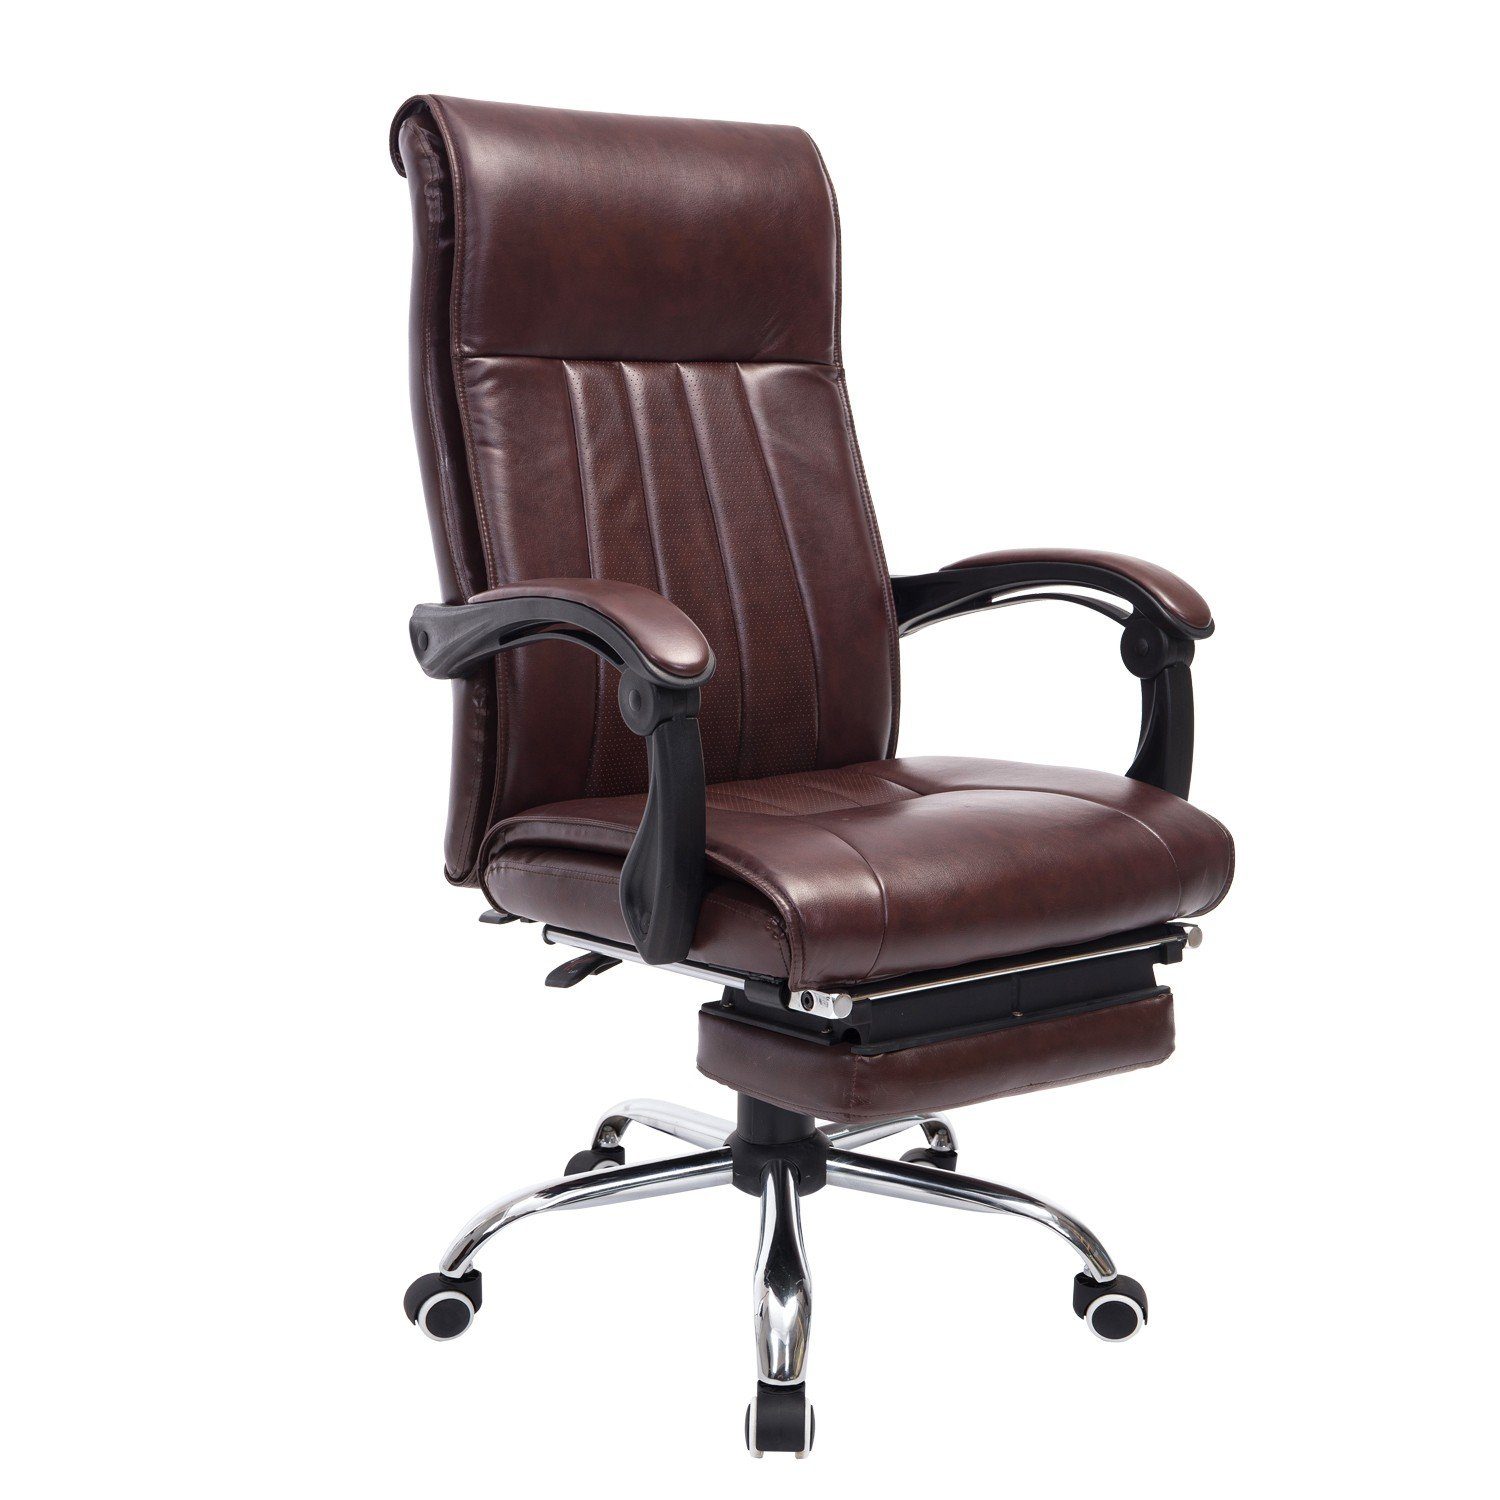 Office Chair Reclining 28 Images 25 Best Ideas About Reclining Office Chair On Pinterest